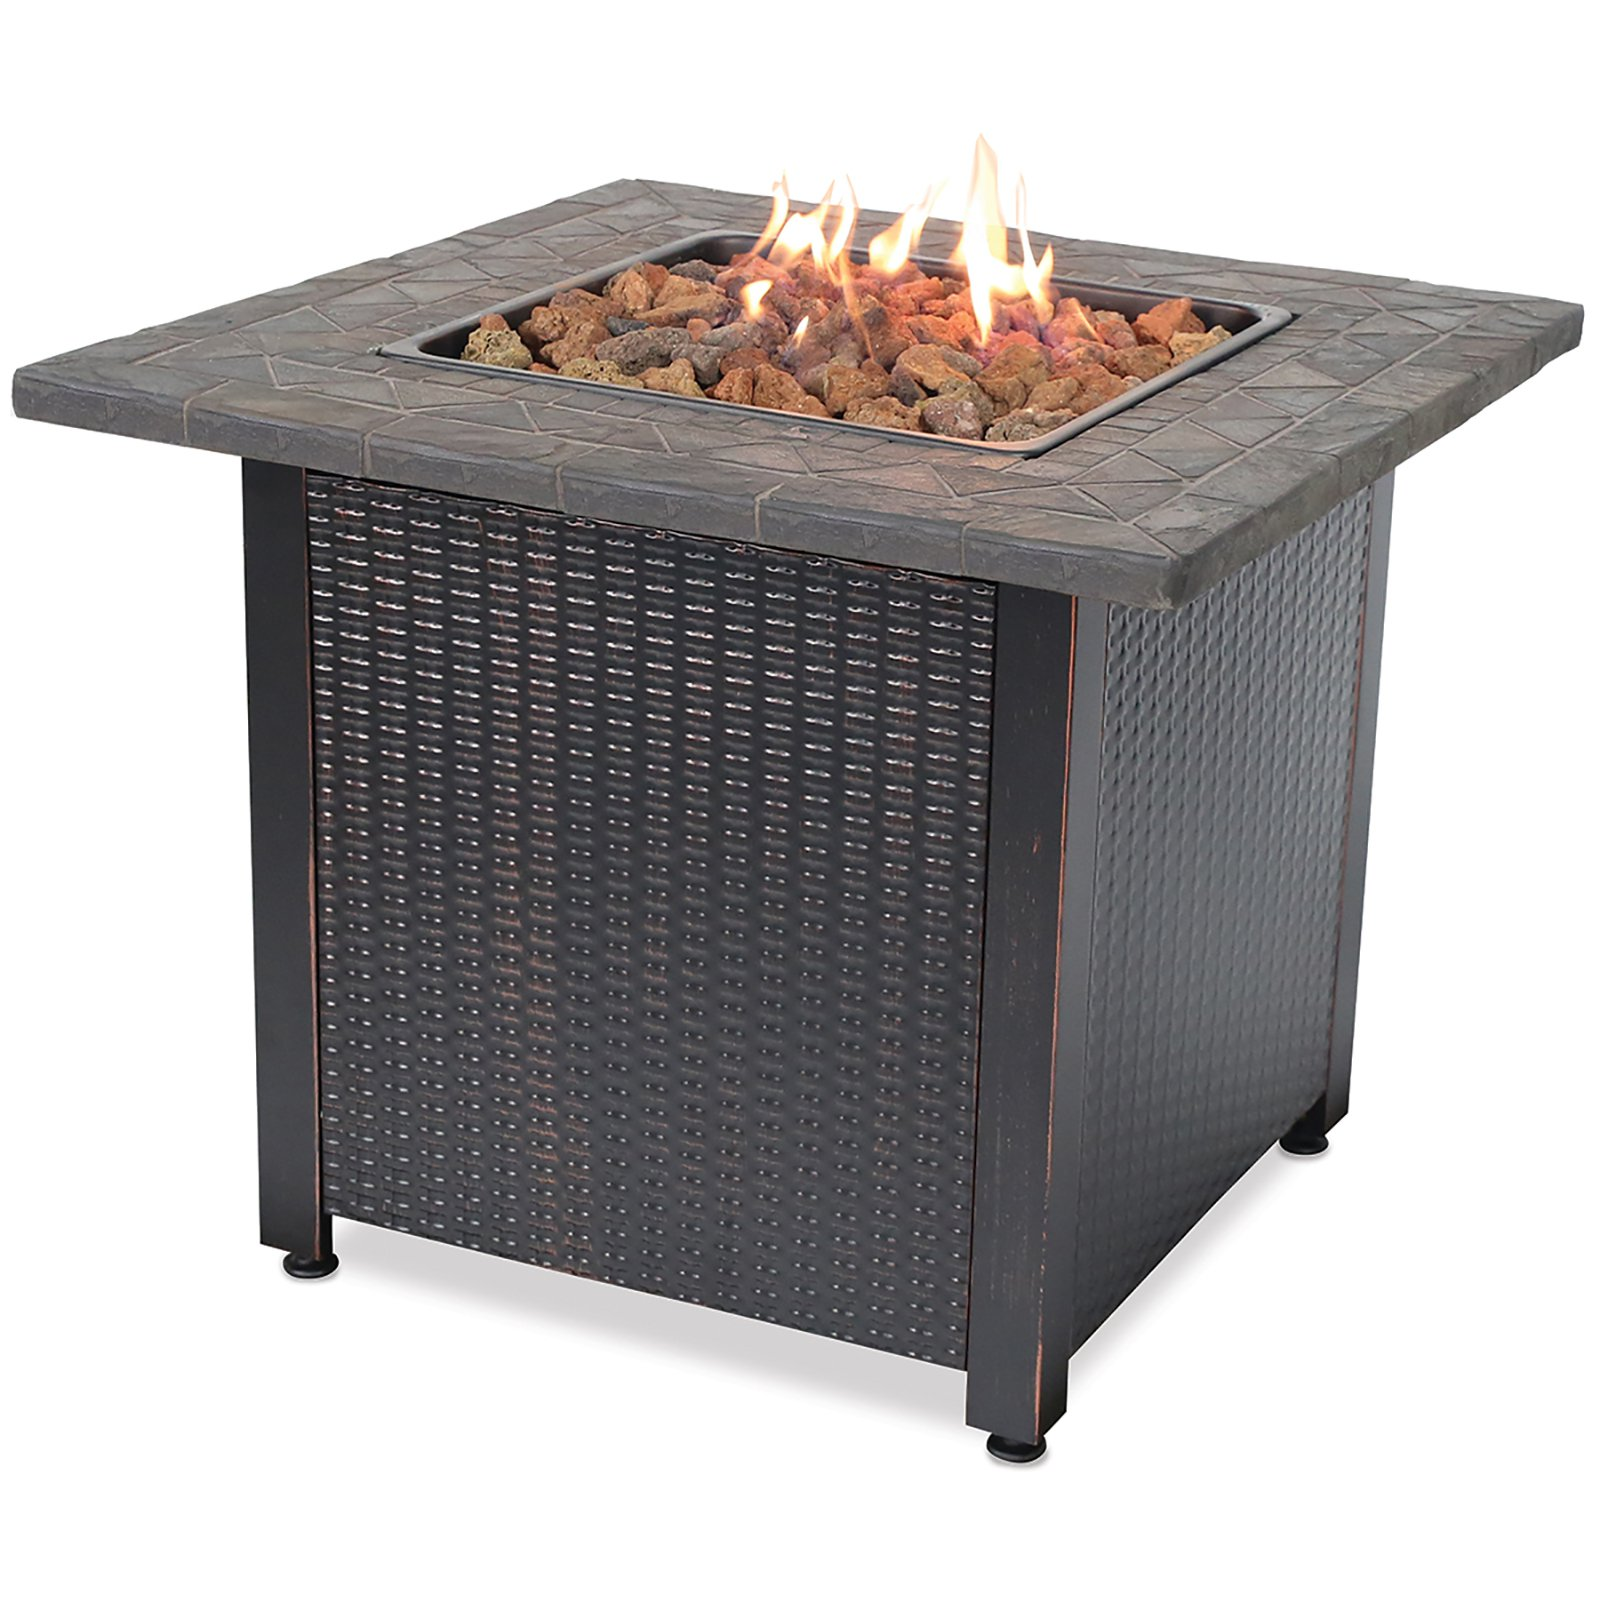 Blue Rhino LP Gas Outdoor Fireplace